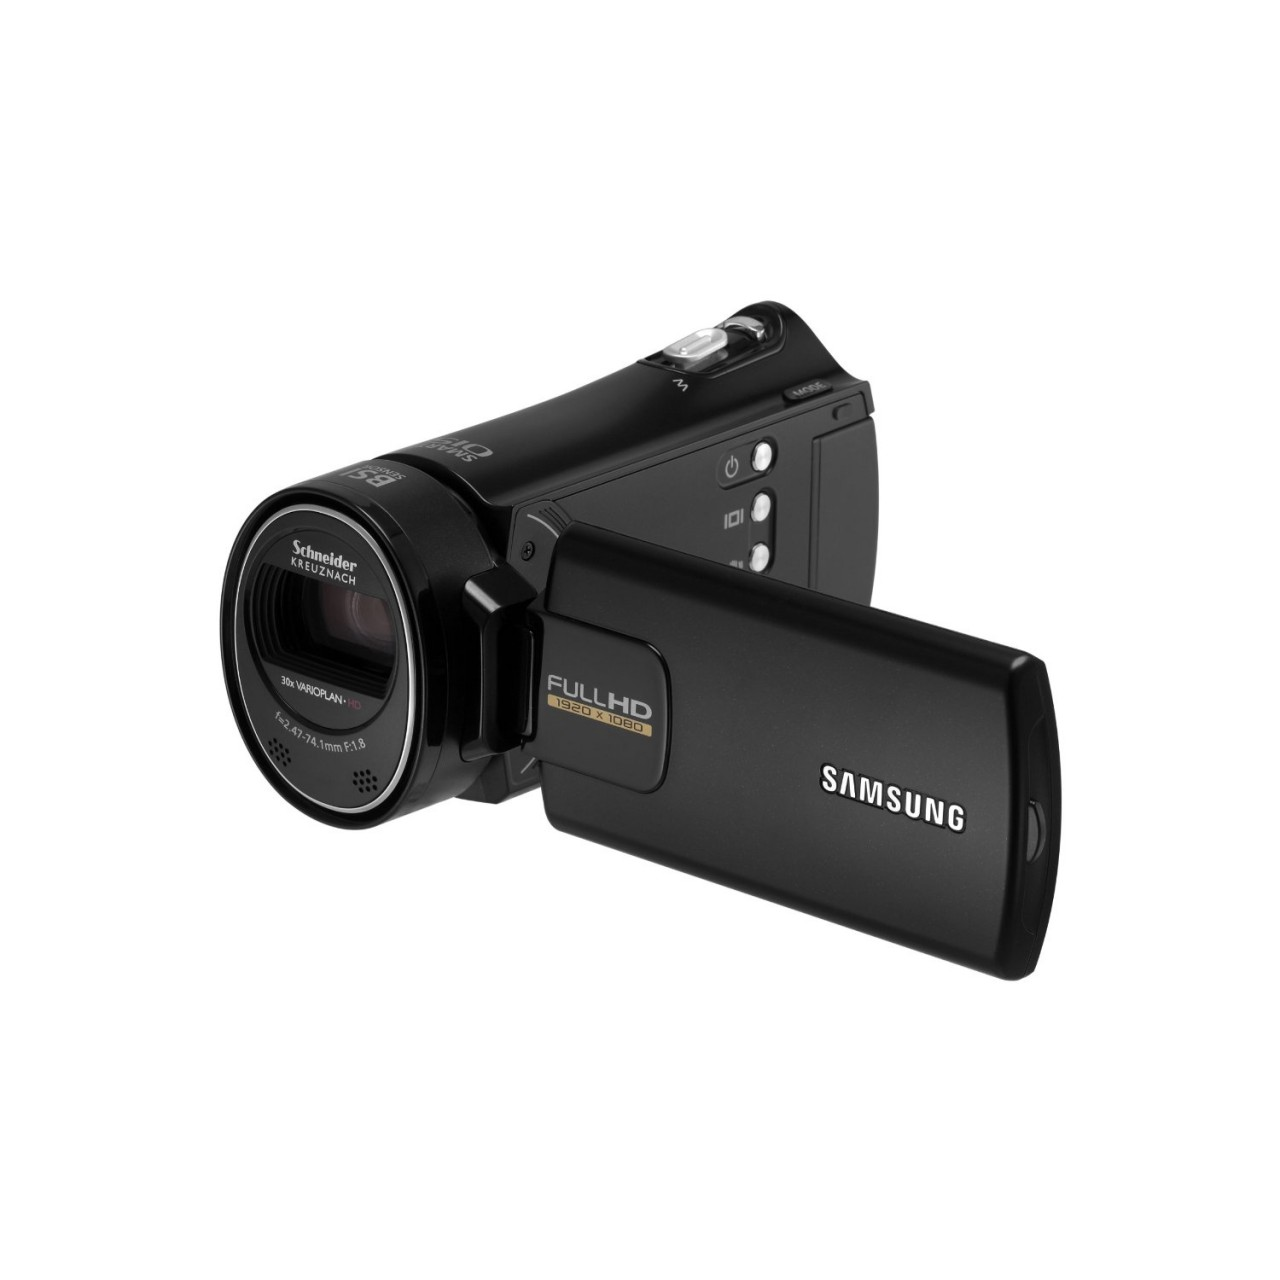 Samsung HMX-H3 Series Camcorders 16GB Internal Flash